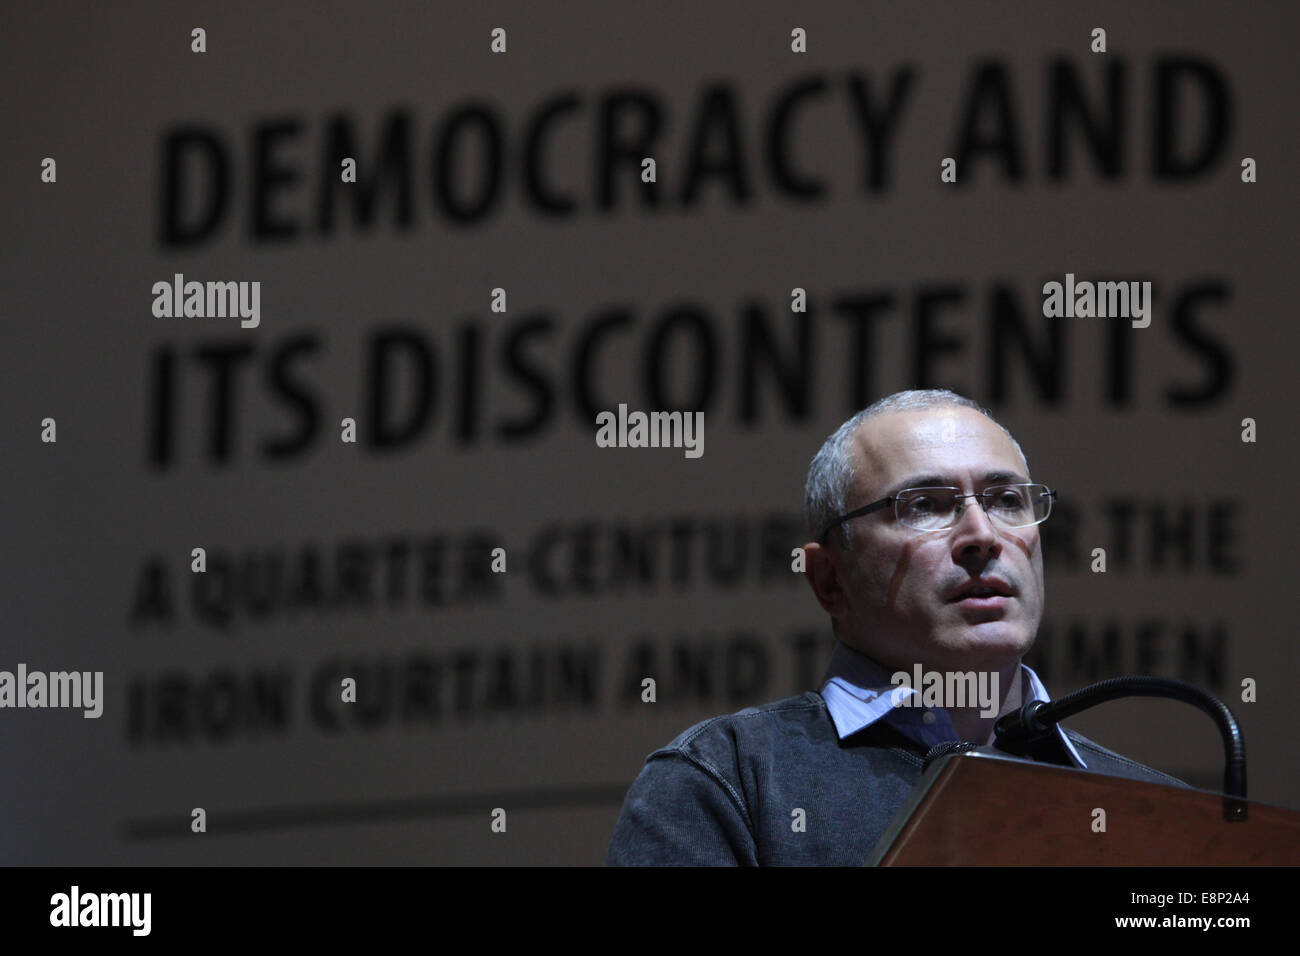 Prague, Czech Republic. 12th October, 2014. Russian former oil tycoon and political prisoner Mikhail Khodorkovsky - Stock Image